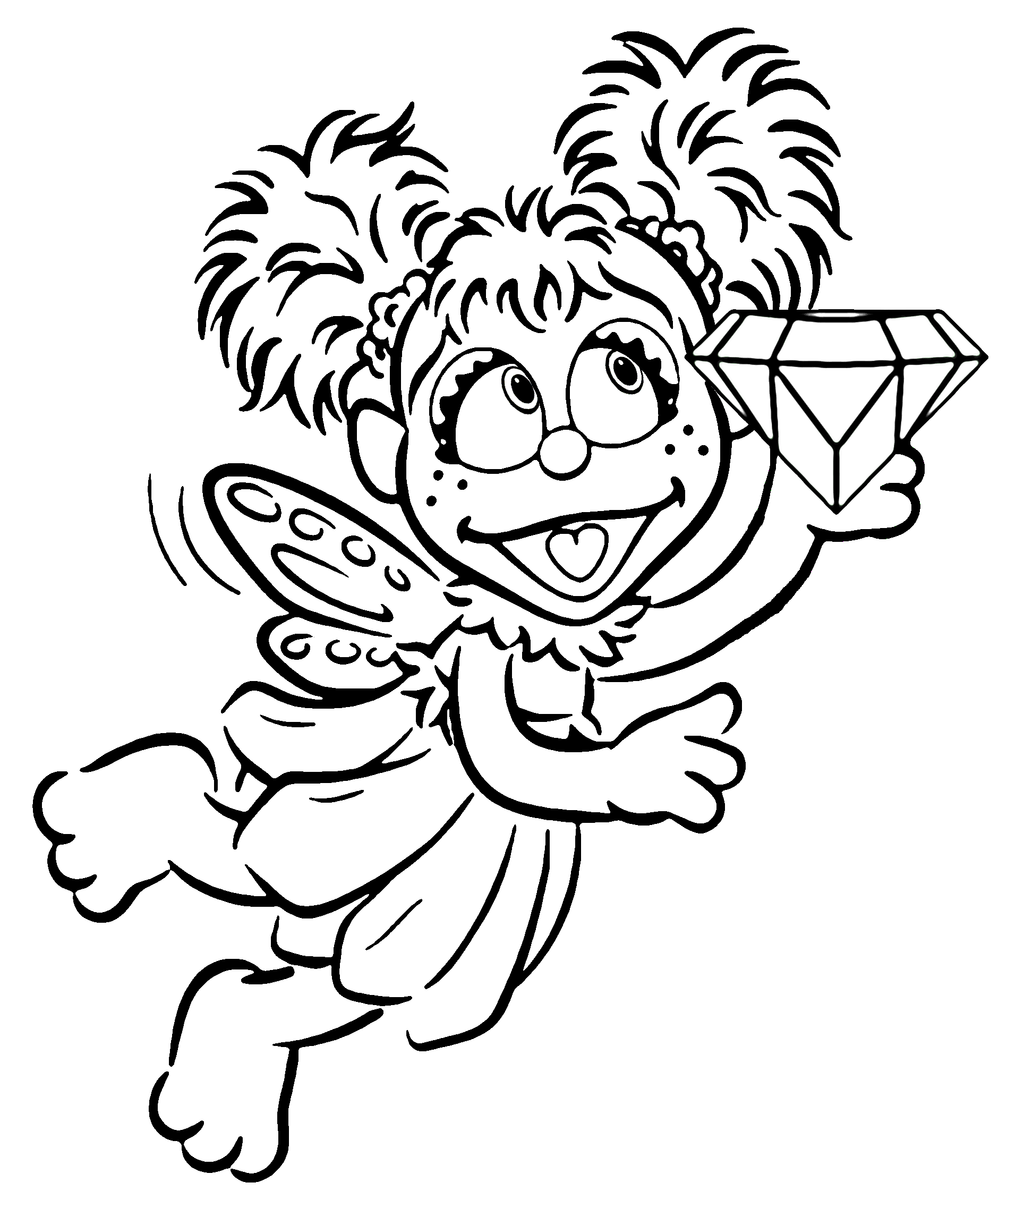 abby coloring pages httppartyinvitationshqcomwp contentuploads201211 coloring abby pages